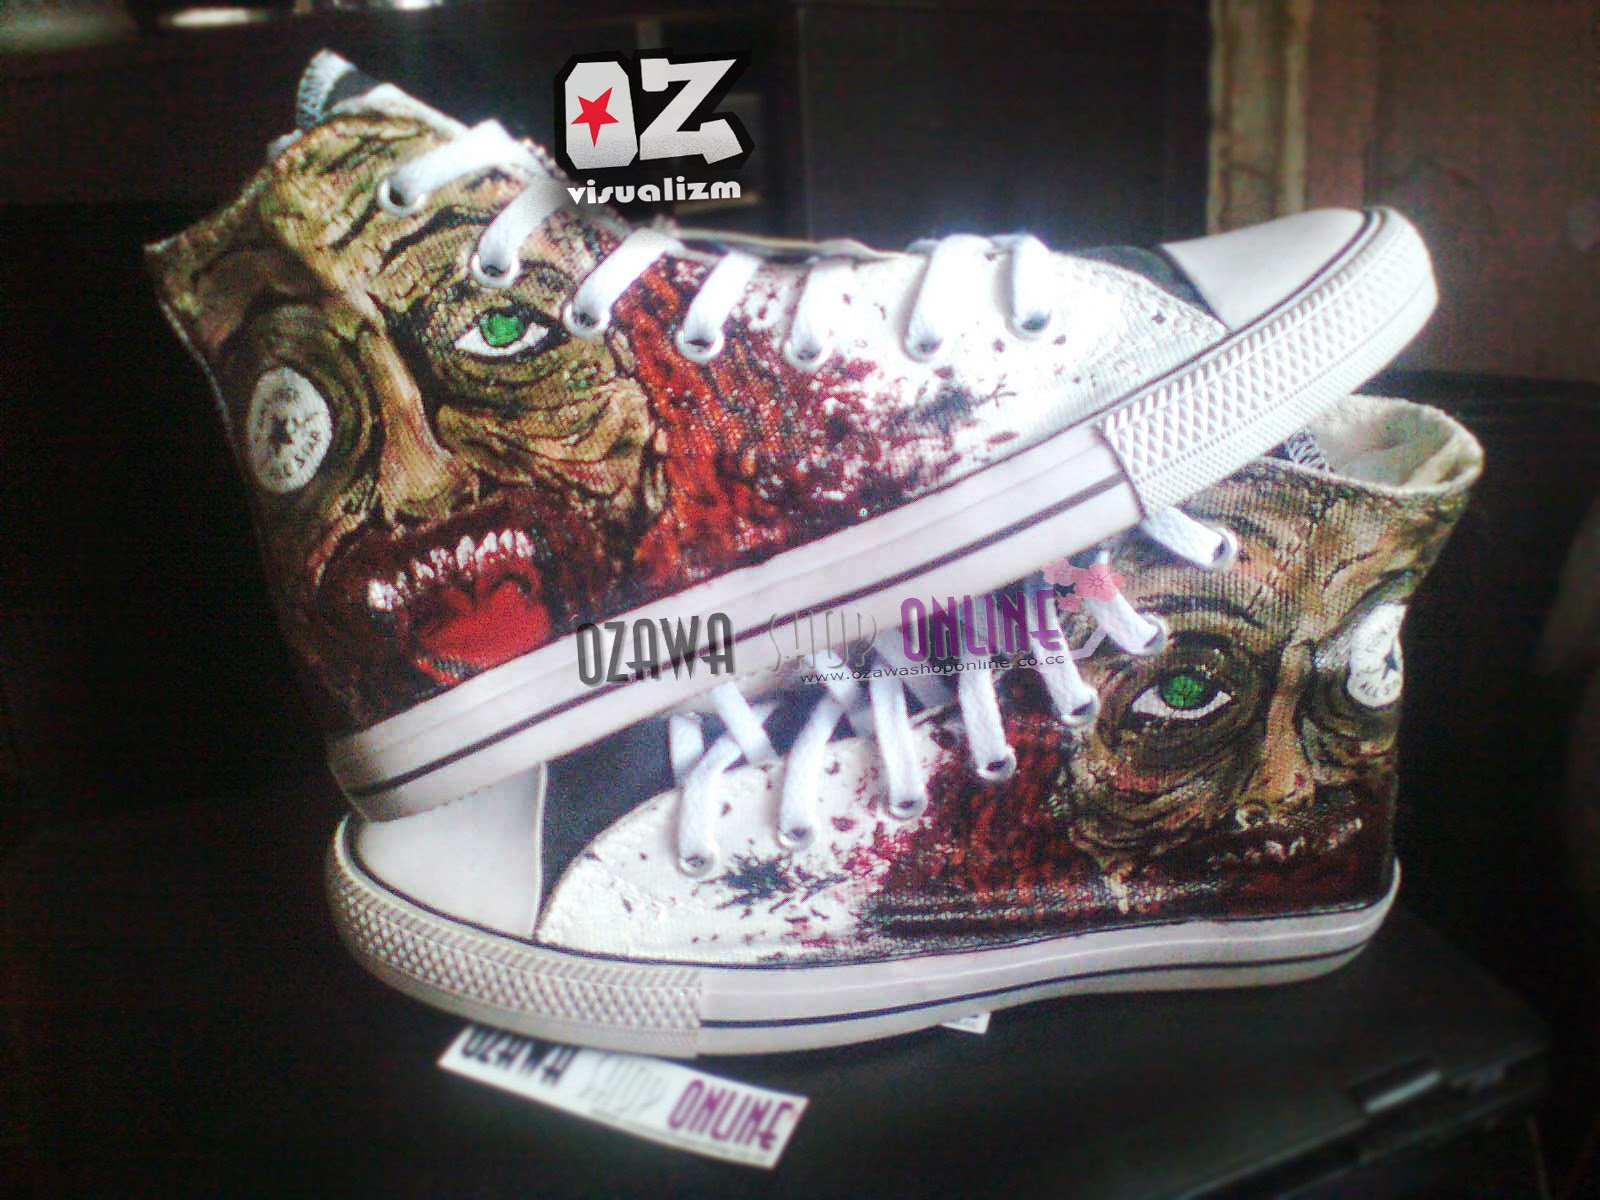 Ozawa Visualizm online shopz  SEPATU LUKIS WALKING DEAD CONVERSE ALL ... 1db148e6e7